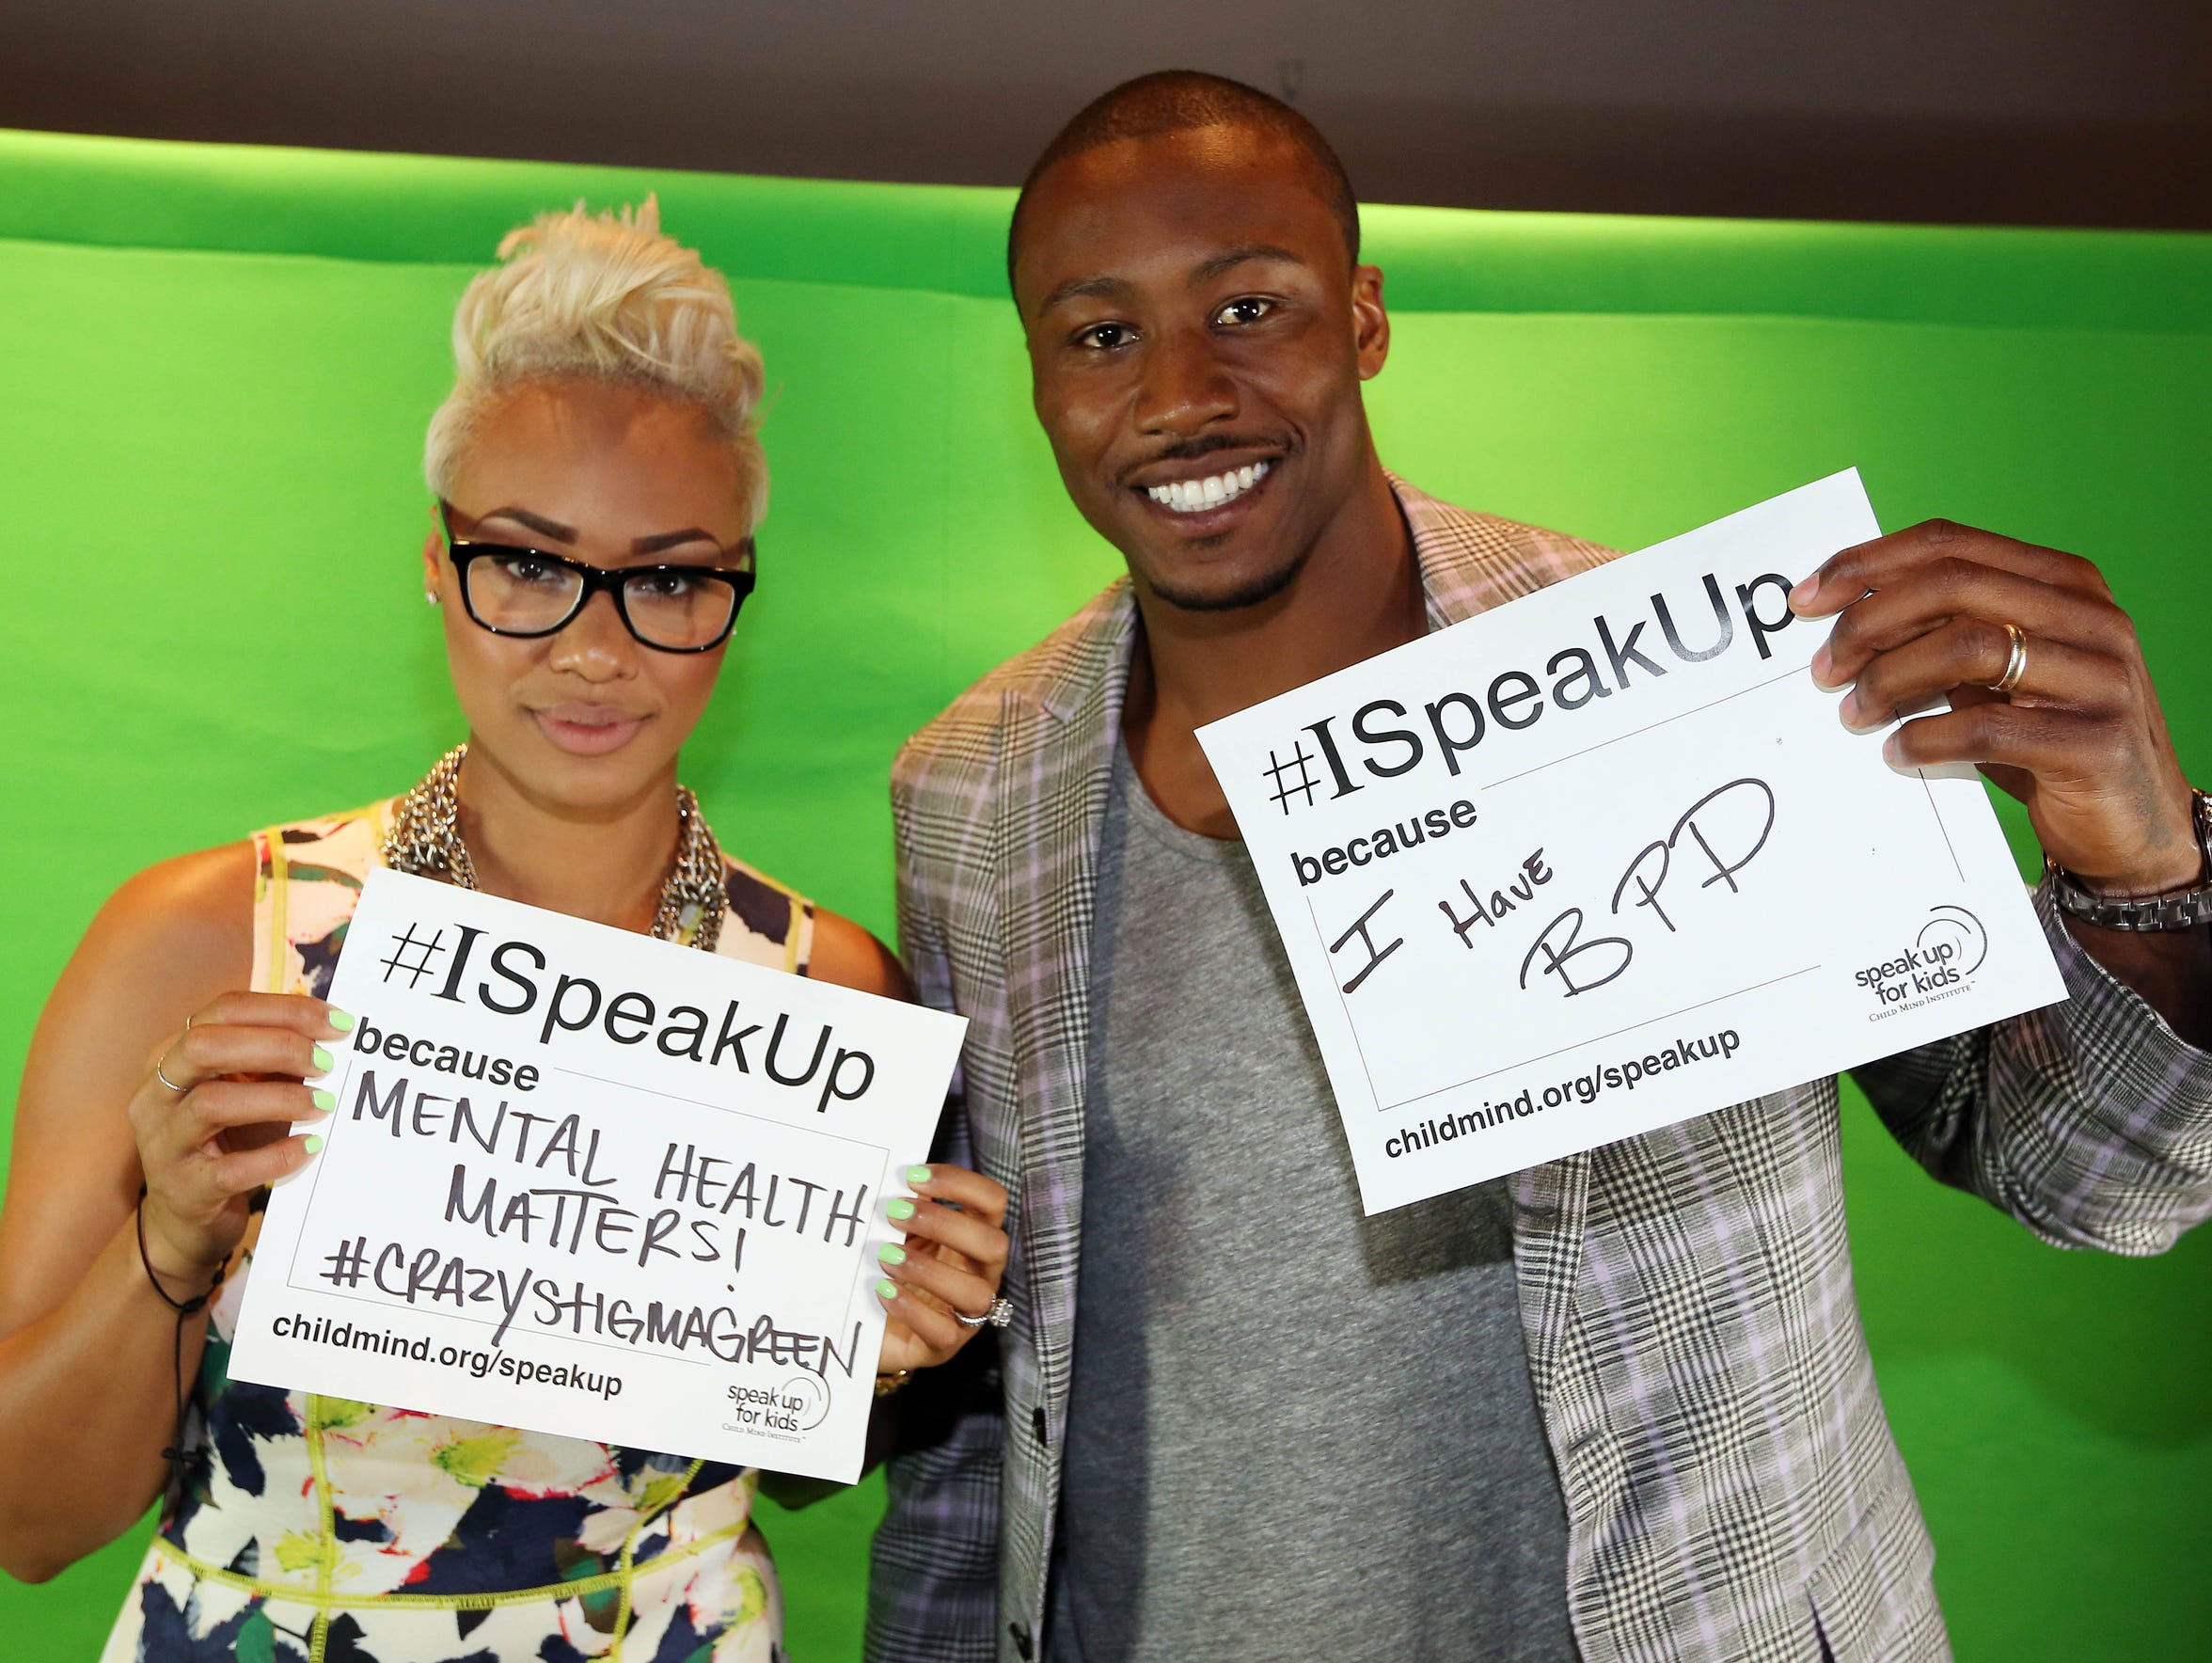 Brandon Marshall, shown here at a mental health event